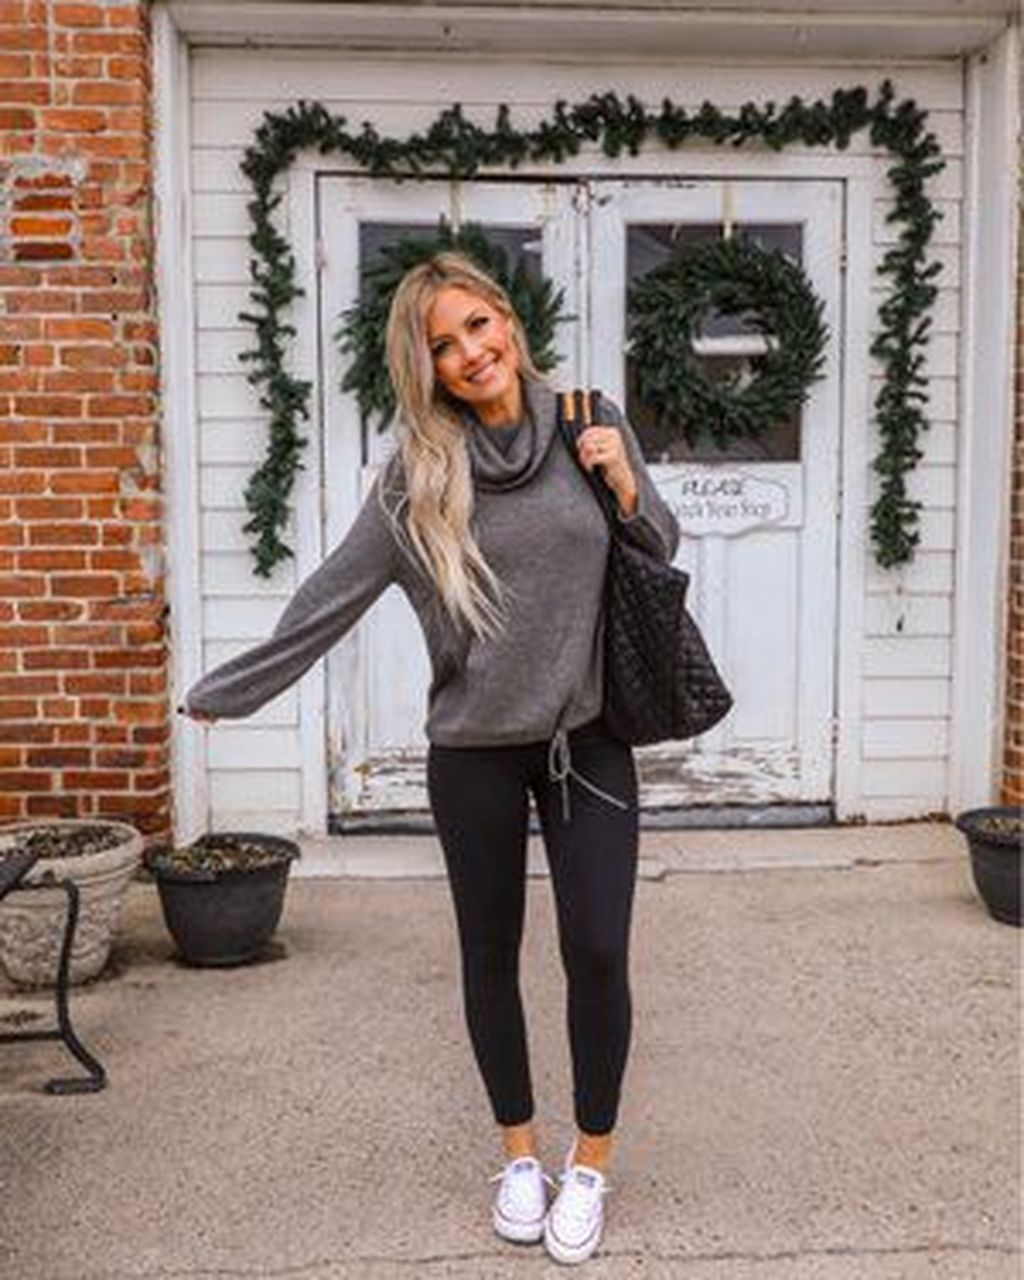 +38 Lovely Fall Outfits Ideas To Wear With Converse 2019  #maddyeuphoriaoutfits windsor, maddy euphoria outfits.Daily Fall Trends Ideas Wear. #maddyeuphoriaoutfits